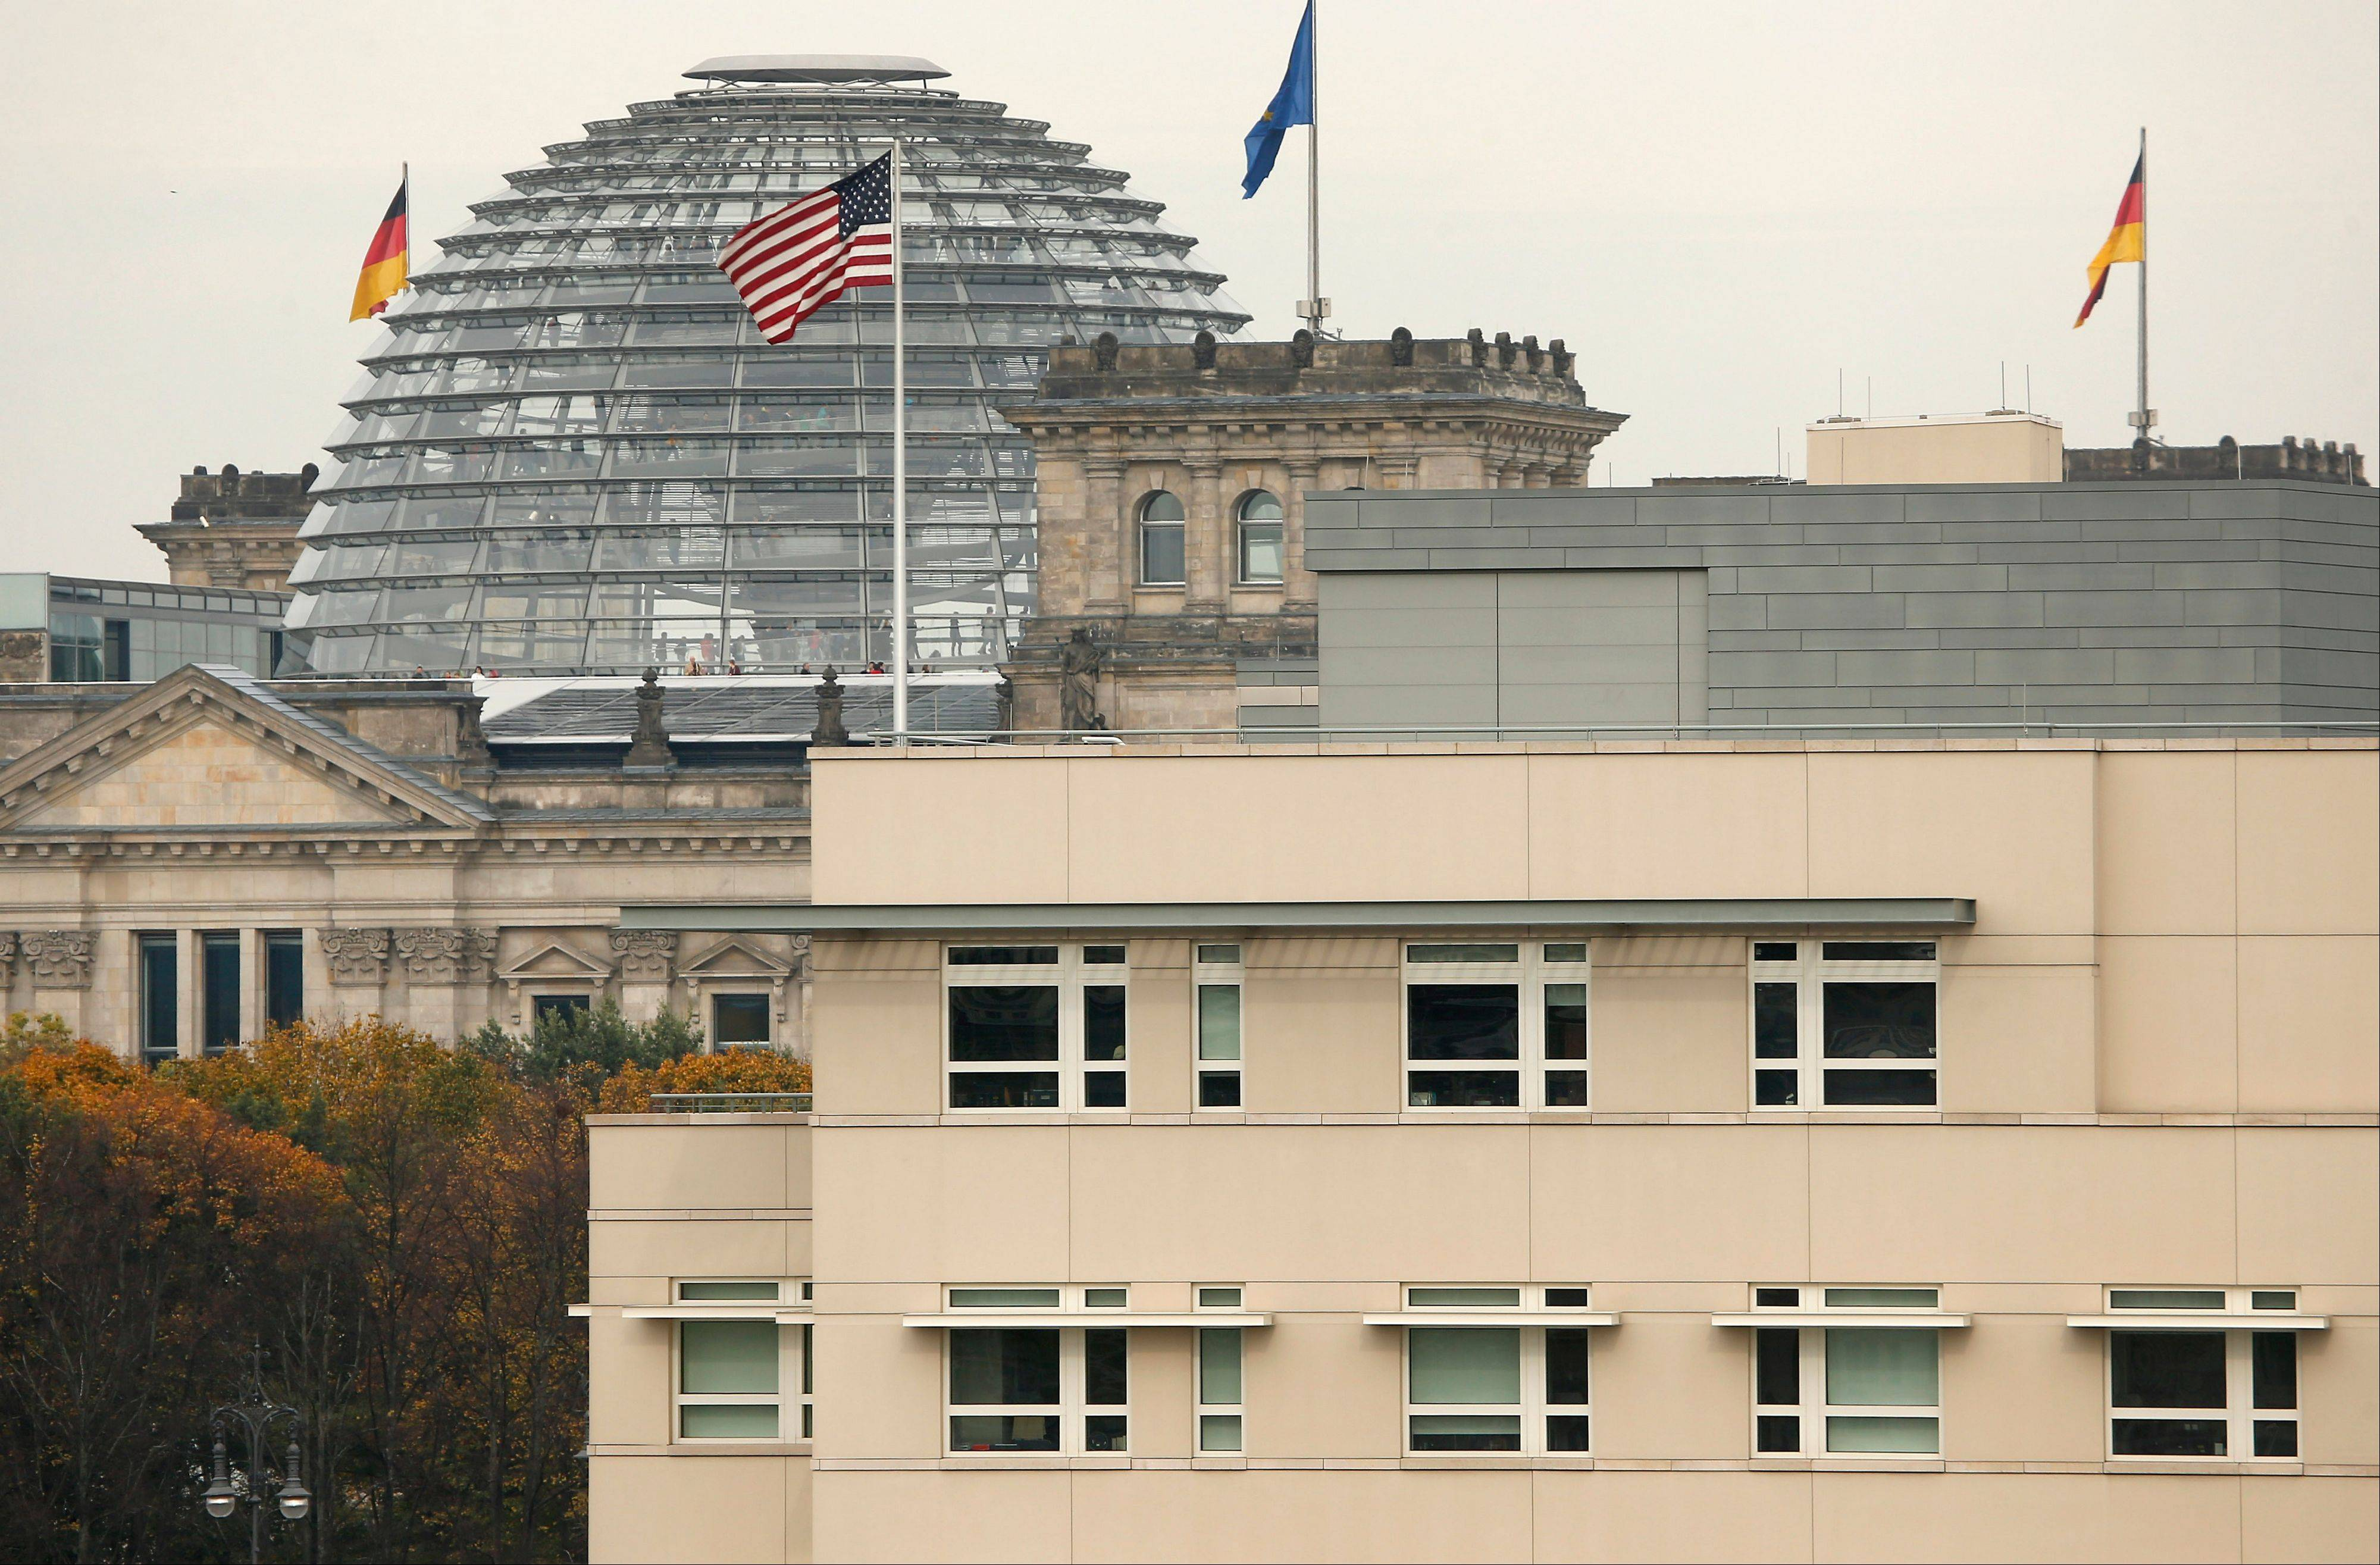 The American flag flies on top of the U.S. embassy in front of the Reichstag building that houses the German Parliament in Berlin.